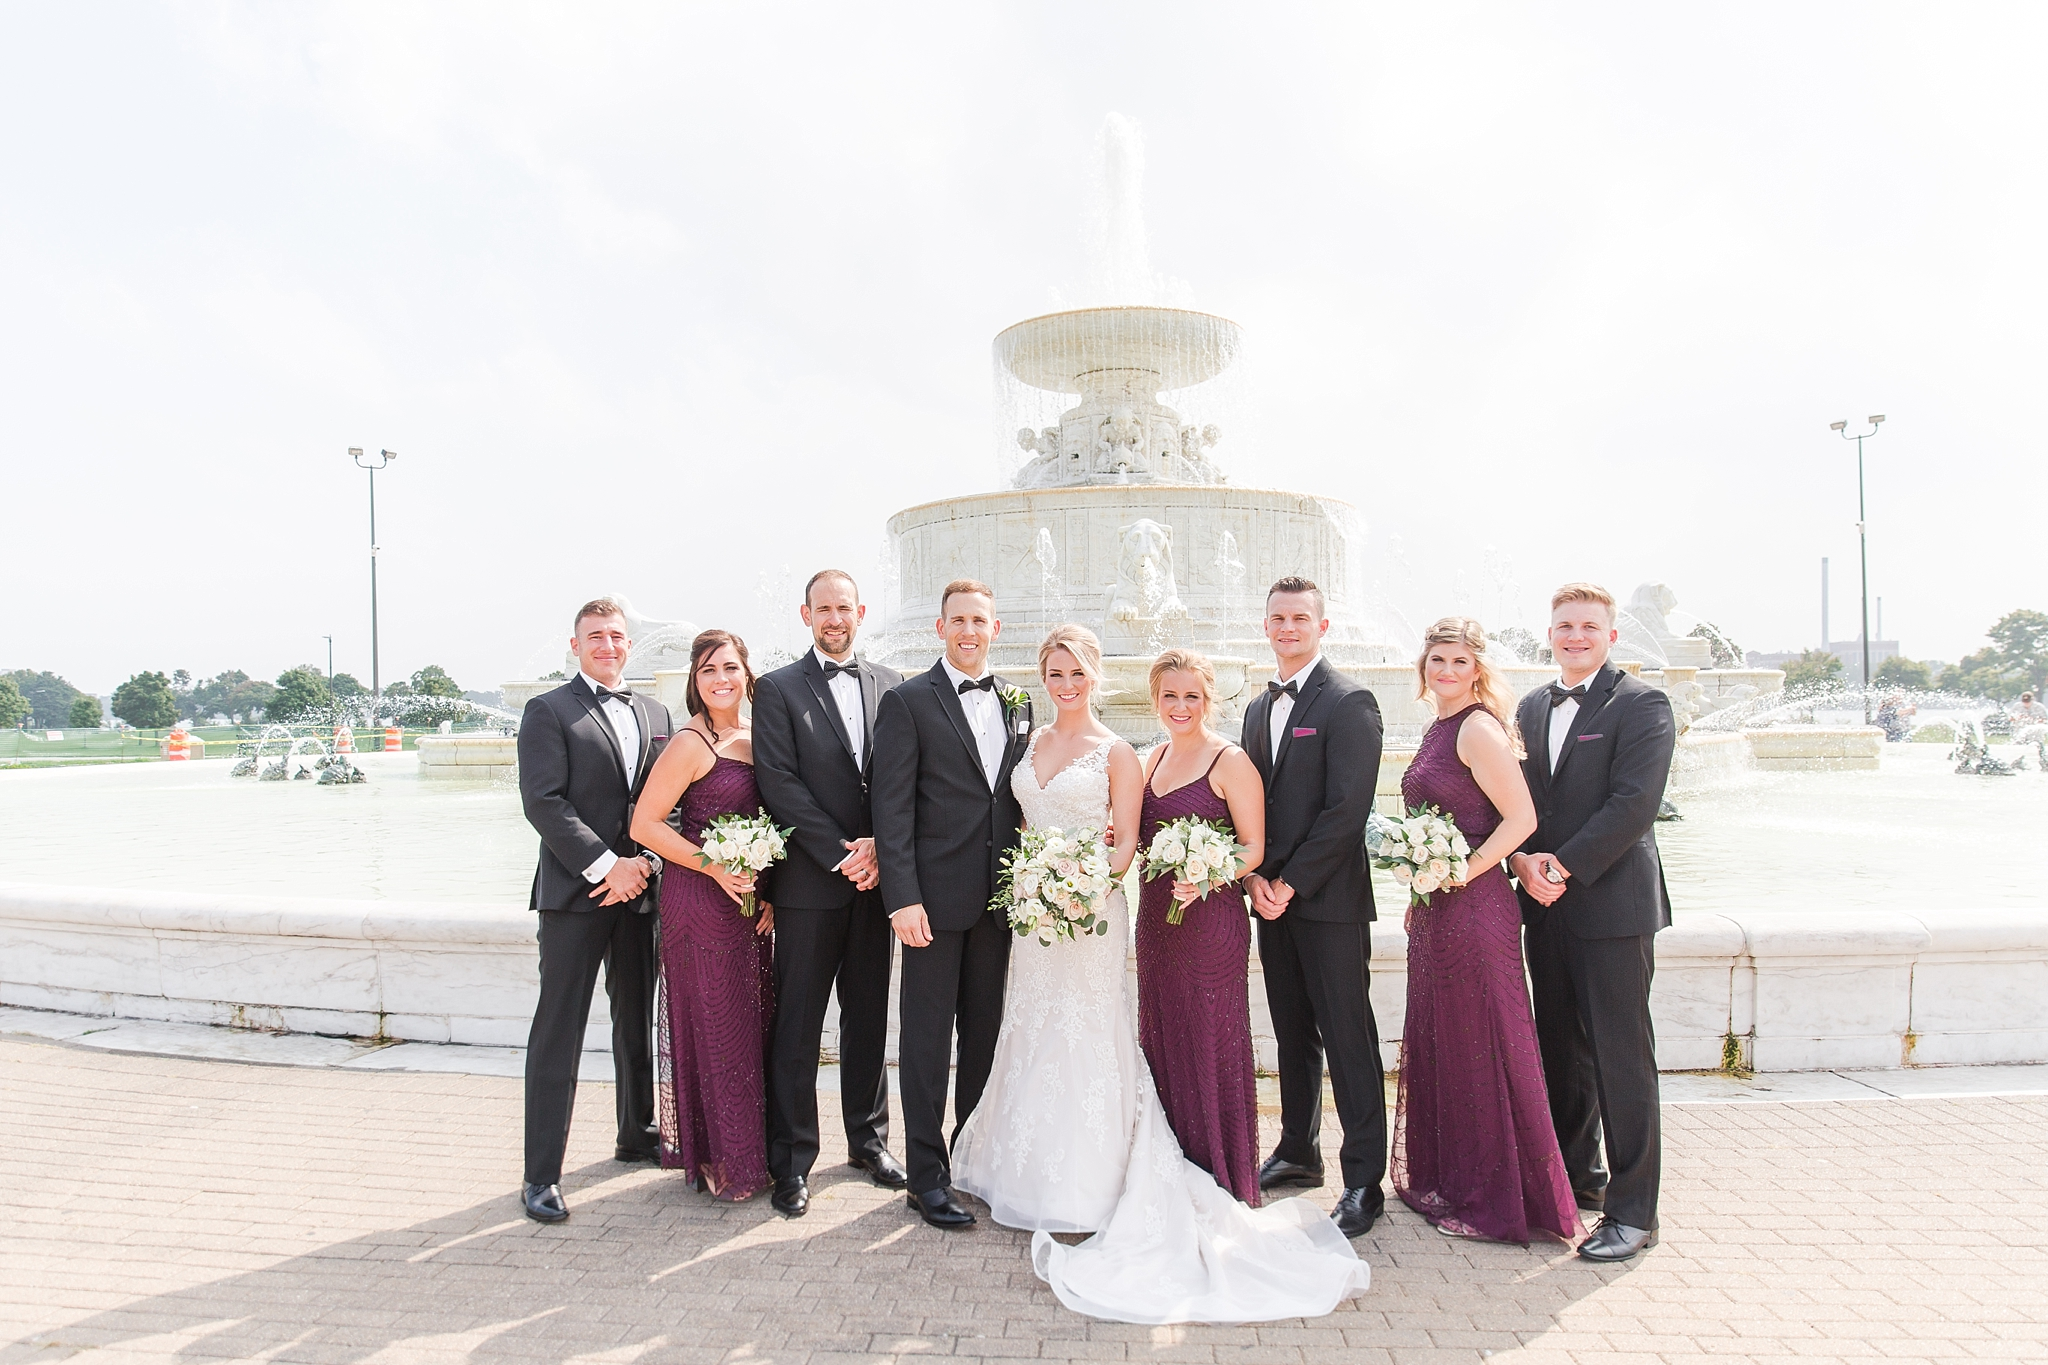 candid-romantic-wedding-photos-at-the-masonic-temple-belle-isle-detroit-institute-of-arts-in-detroit-michigan-by-courtney-carolyn-photography_0033.jpg